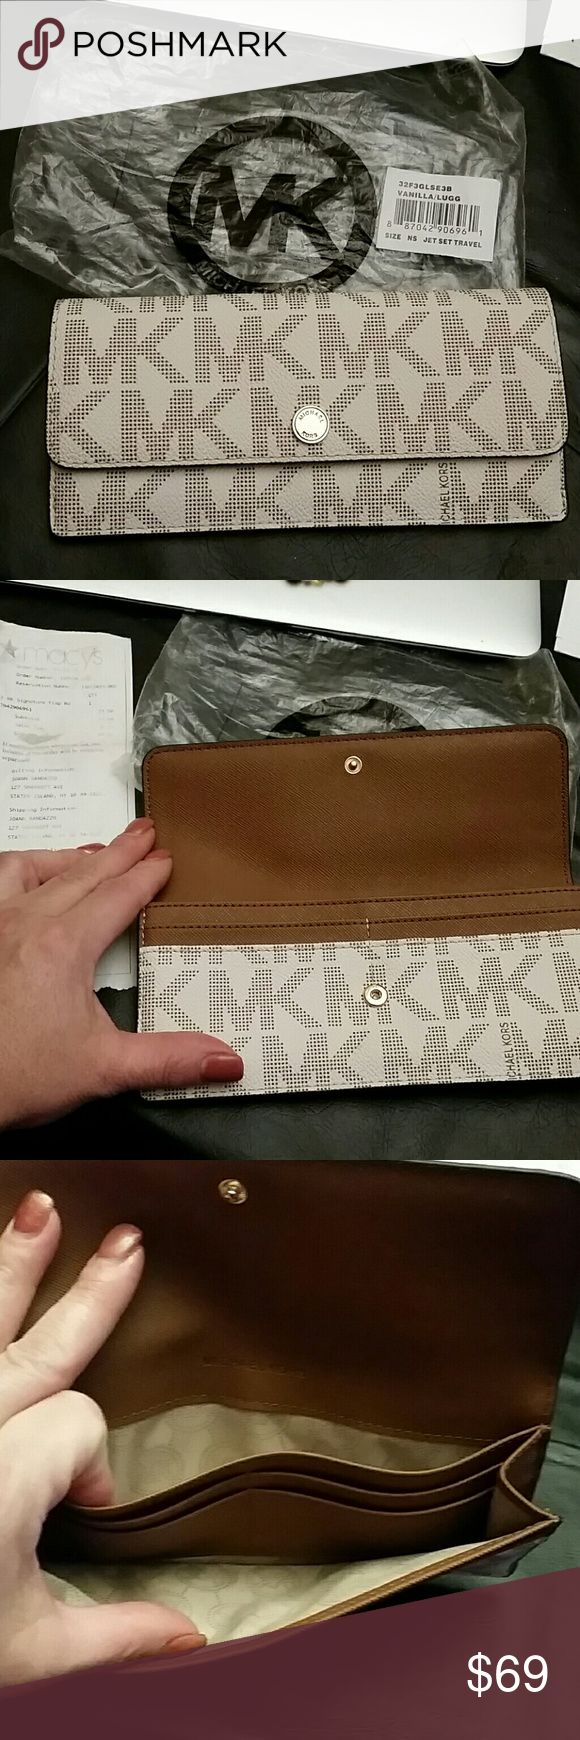 Michael Kors Jet Set Travel Flap Wallet New Vanilla Leather  Camel interior  Gold hardware  Purchased at macys and never used Michael Kors Bags Wallets